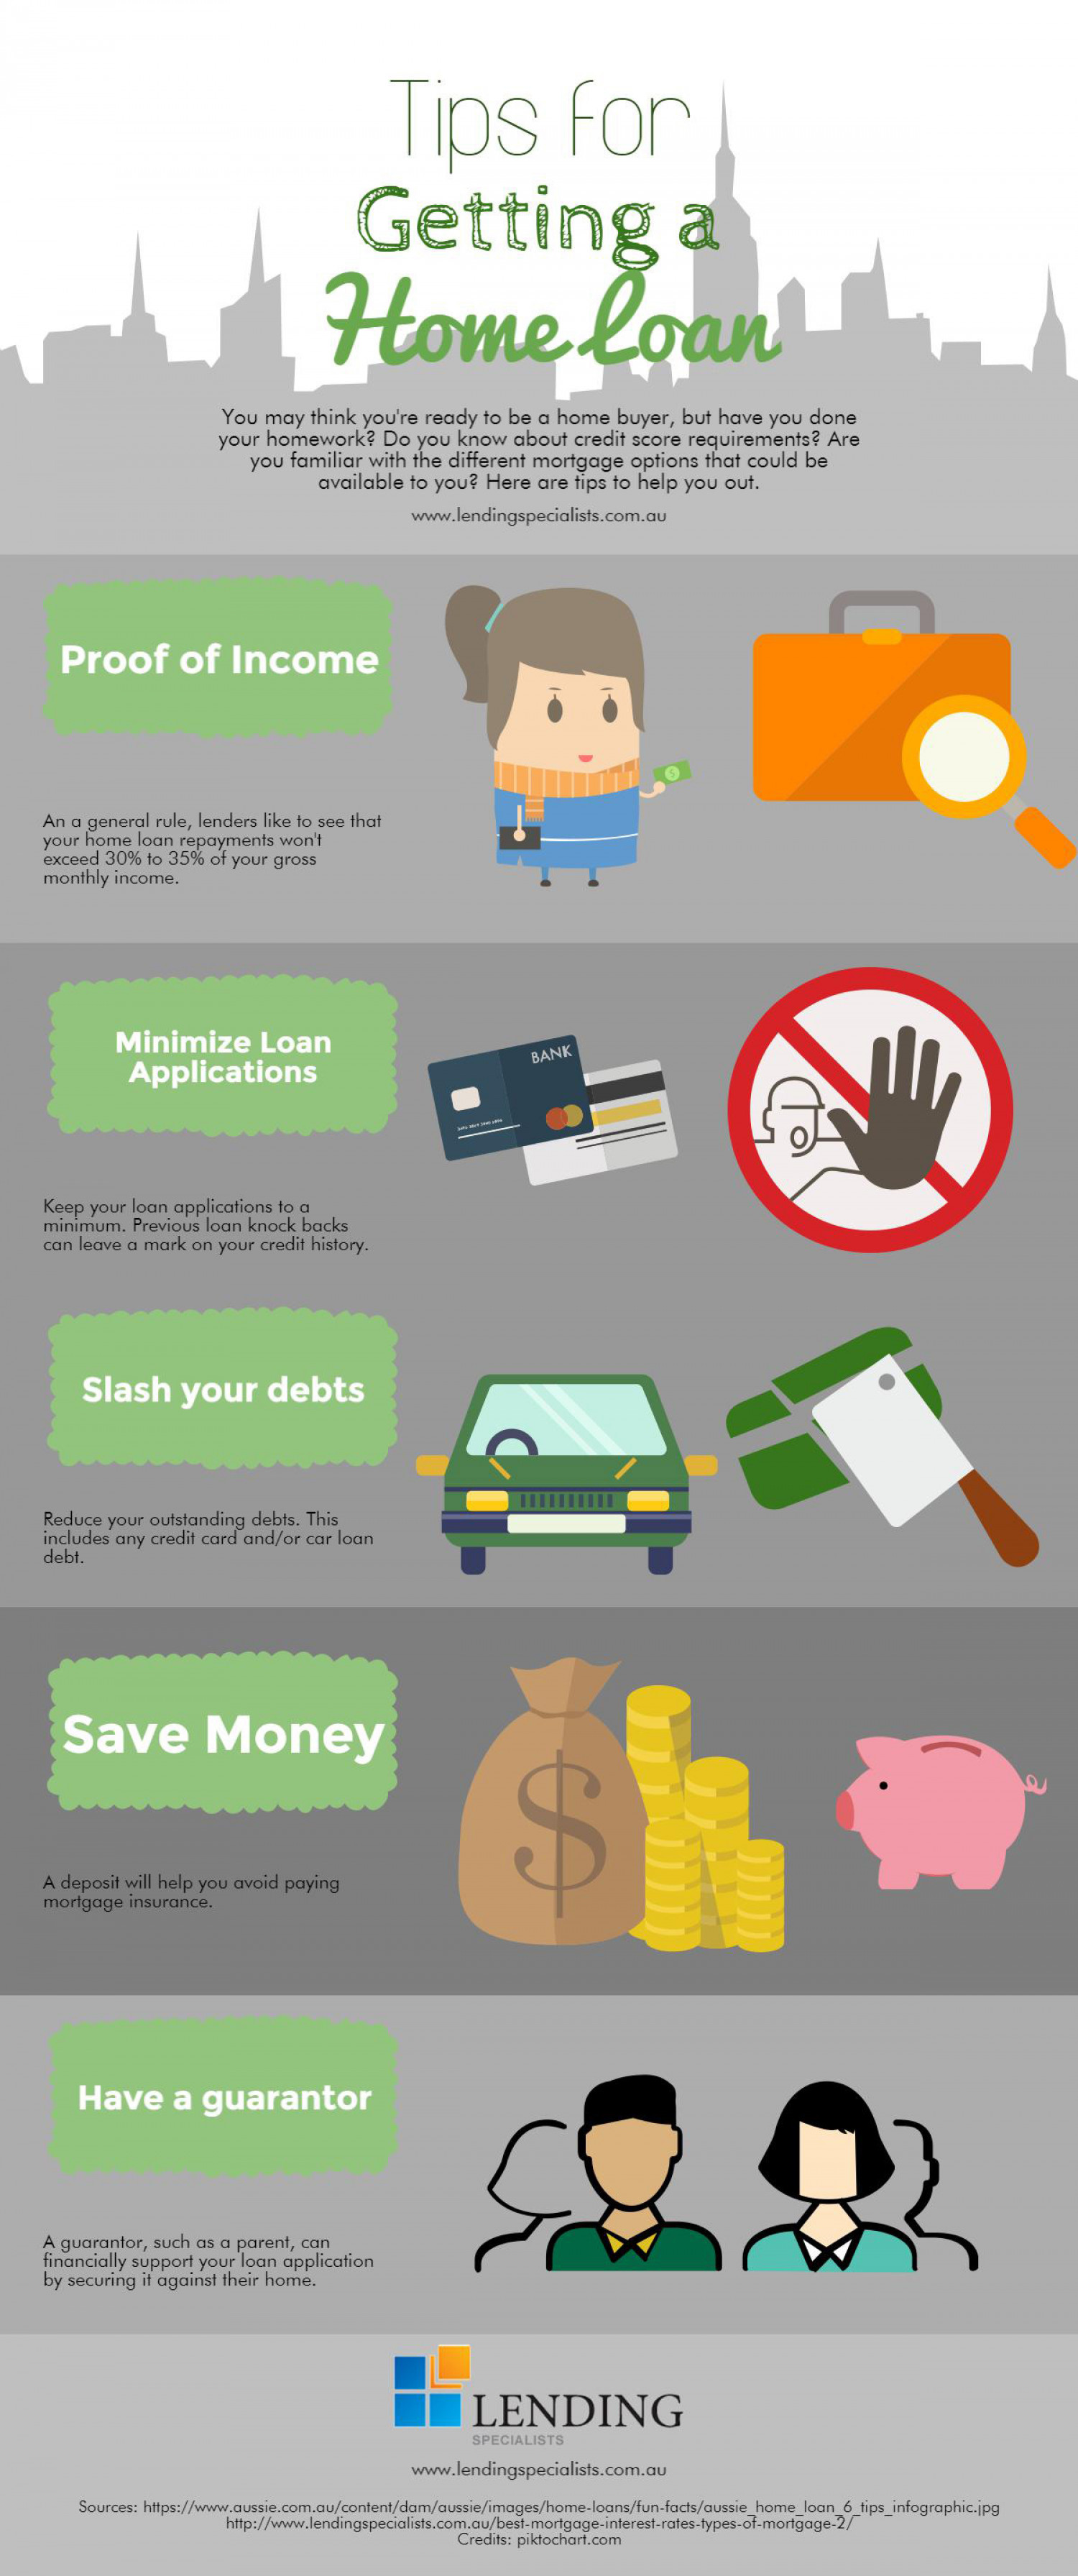 Tips for Getting a Home Loan Infographic